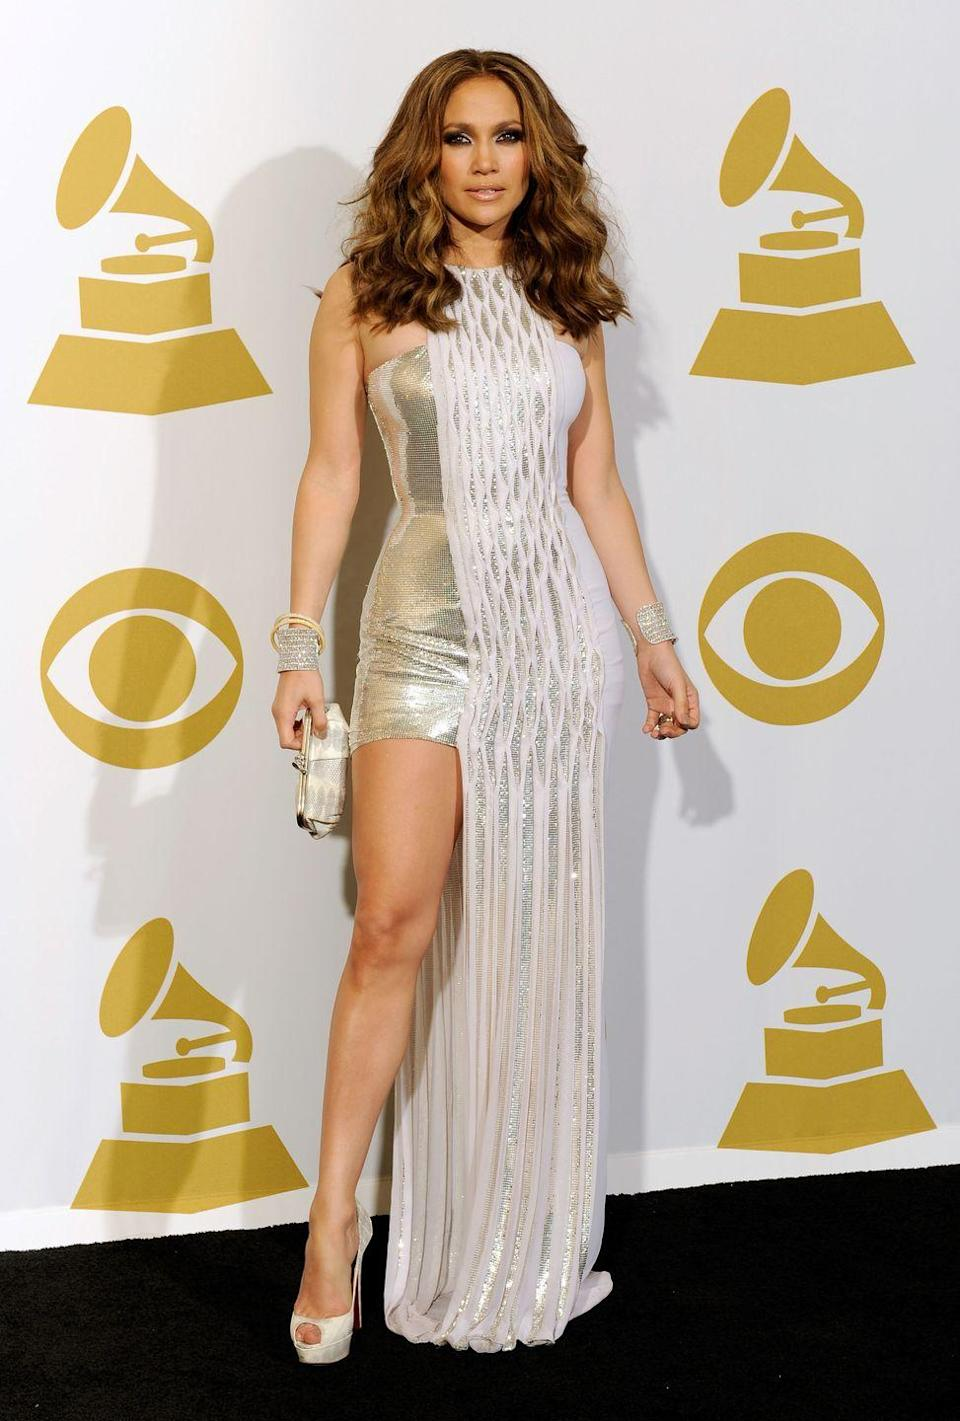 <p><strong>When: </strong>January 2010</p><p><strong>Where: </strong>The Grammys</p><p><strong>Wearing: </strong>Versace</p>